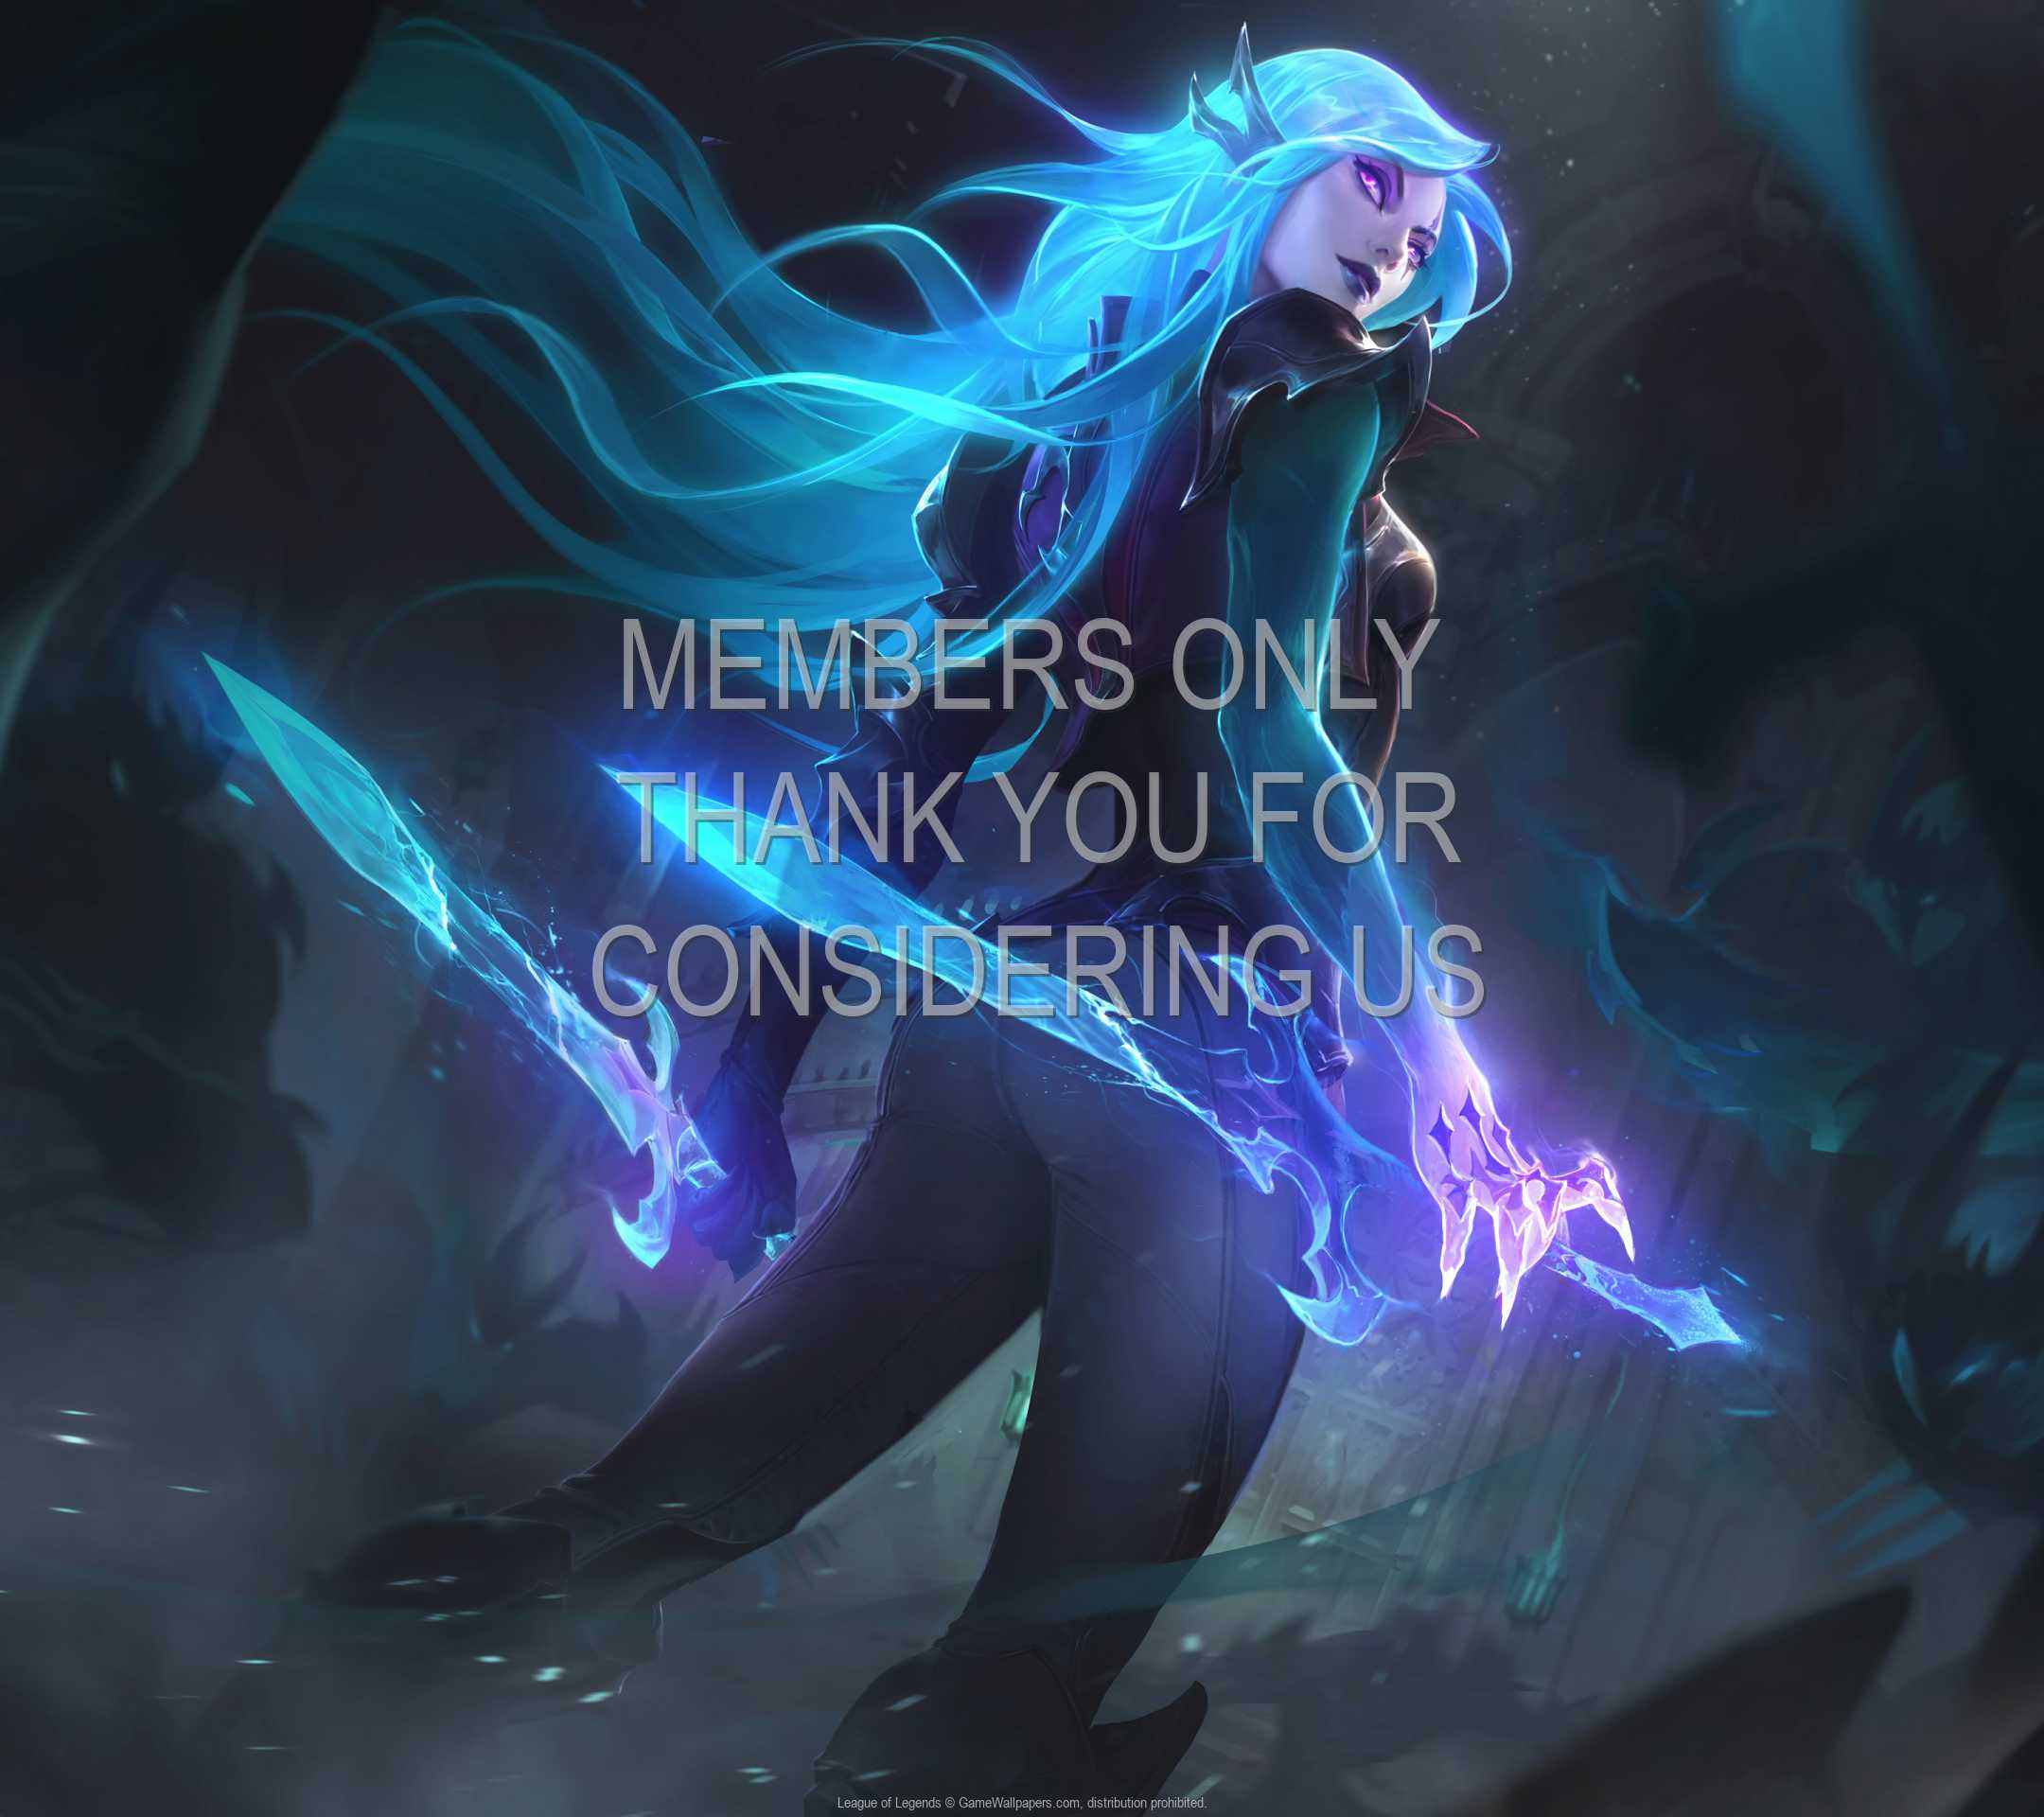 League of Legends 1080p Horizontal Mobile wallpaper or background 77